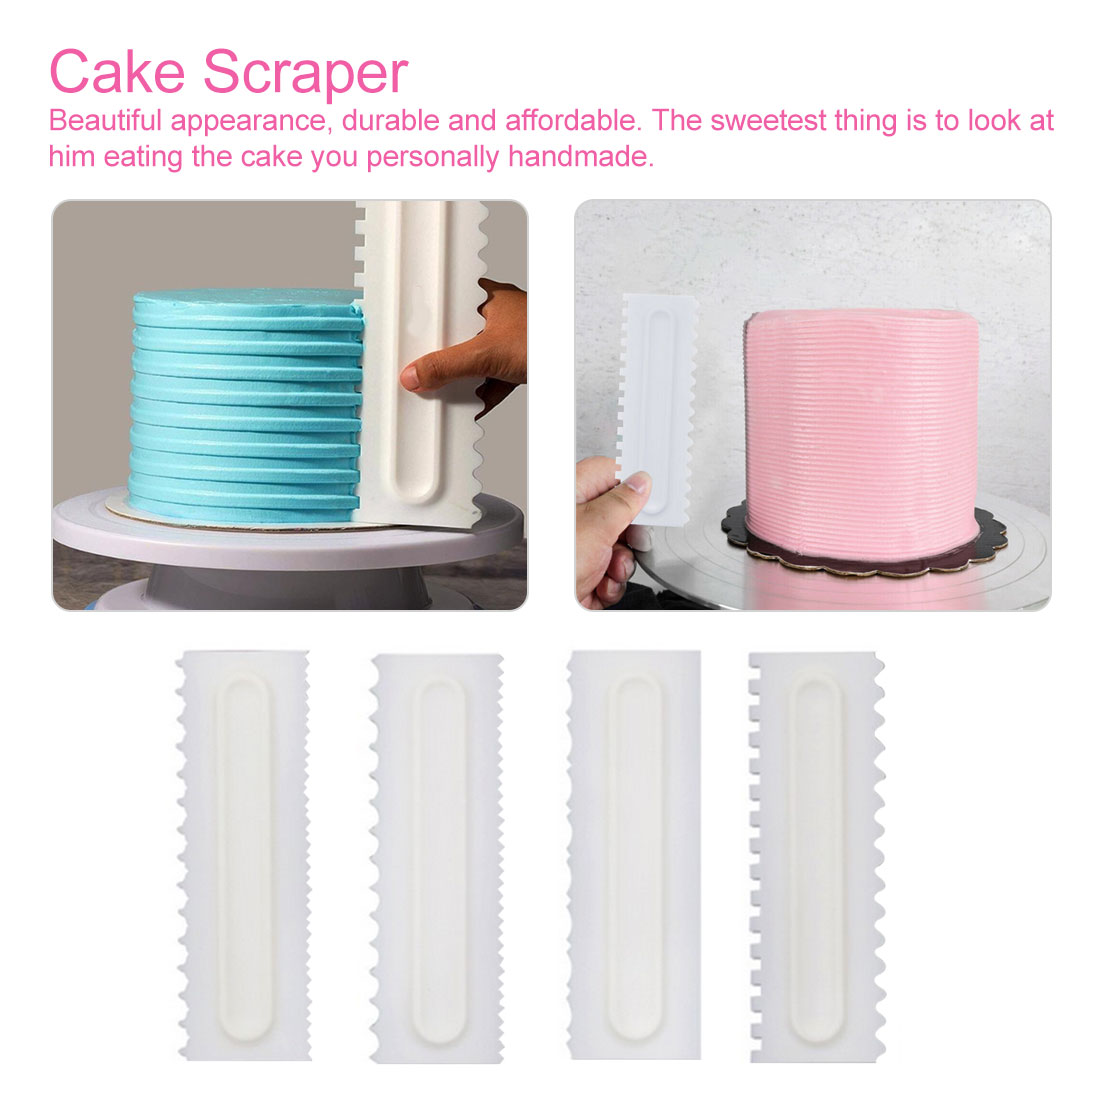 4Pcs/Set <font><b>Cake</b></font> Decorating Comb <font><b>Cake</b></font> <font><b>Scraper</b></font> <font><b>Smoother</b></font> Cream Decorating Pastry Icing Comb Fondant Spatulas Baking Pastry Tools image